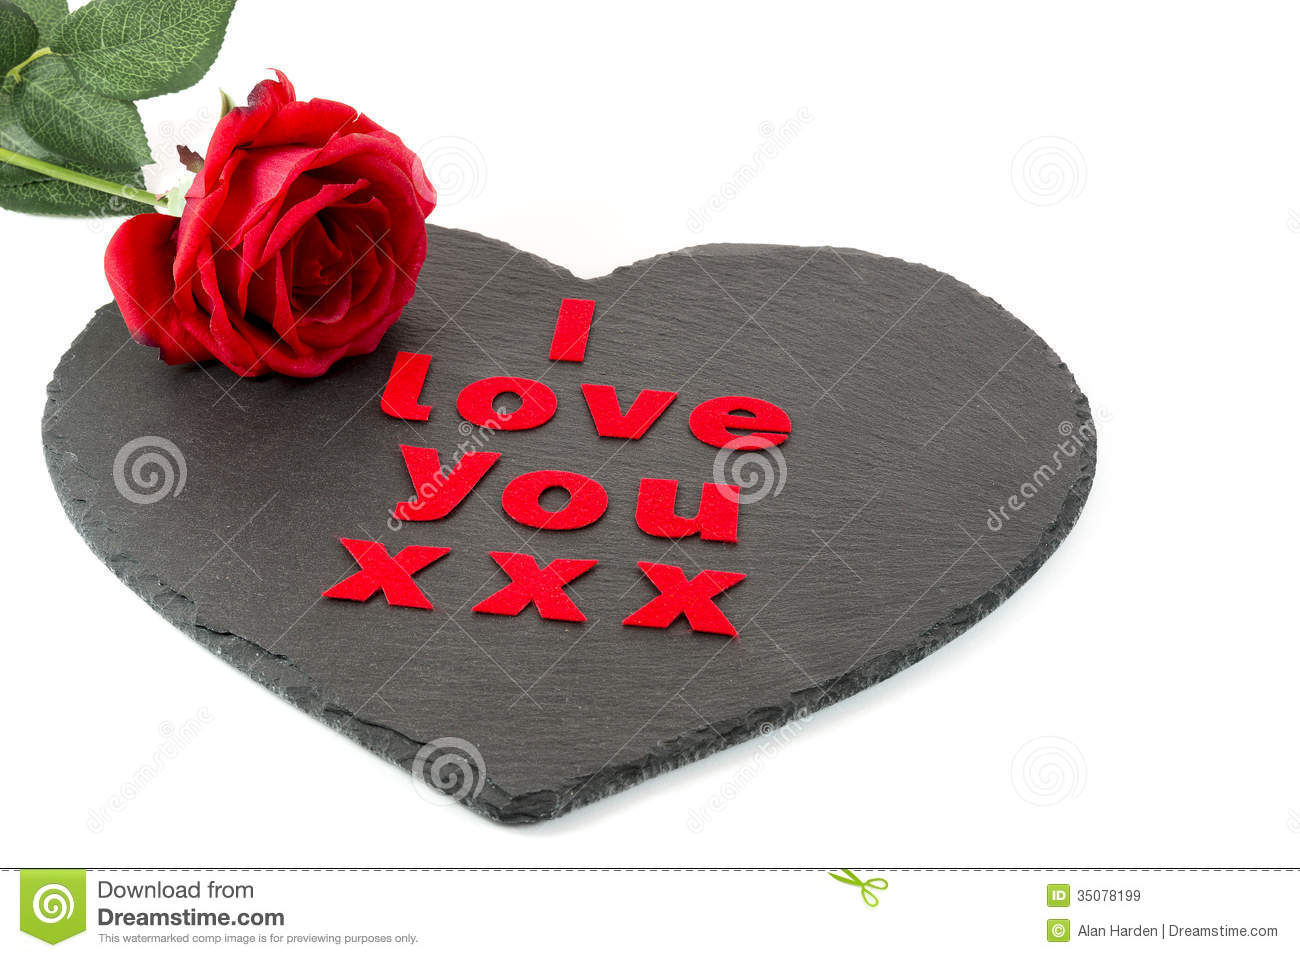 i love you with a red rose on a heart shaped slate with a white